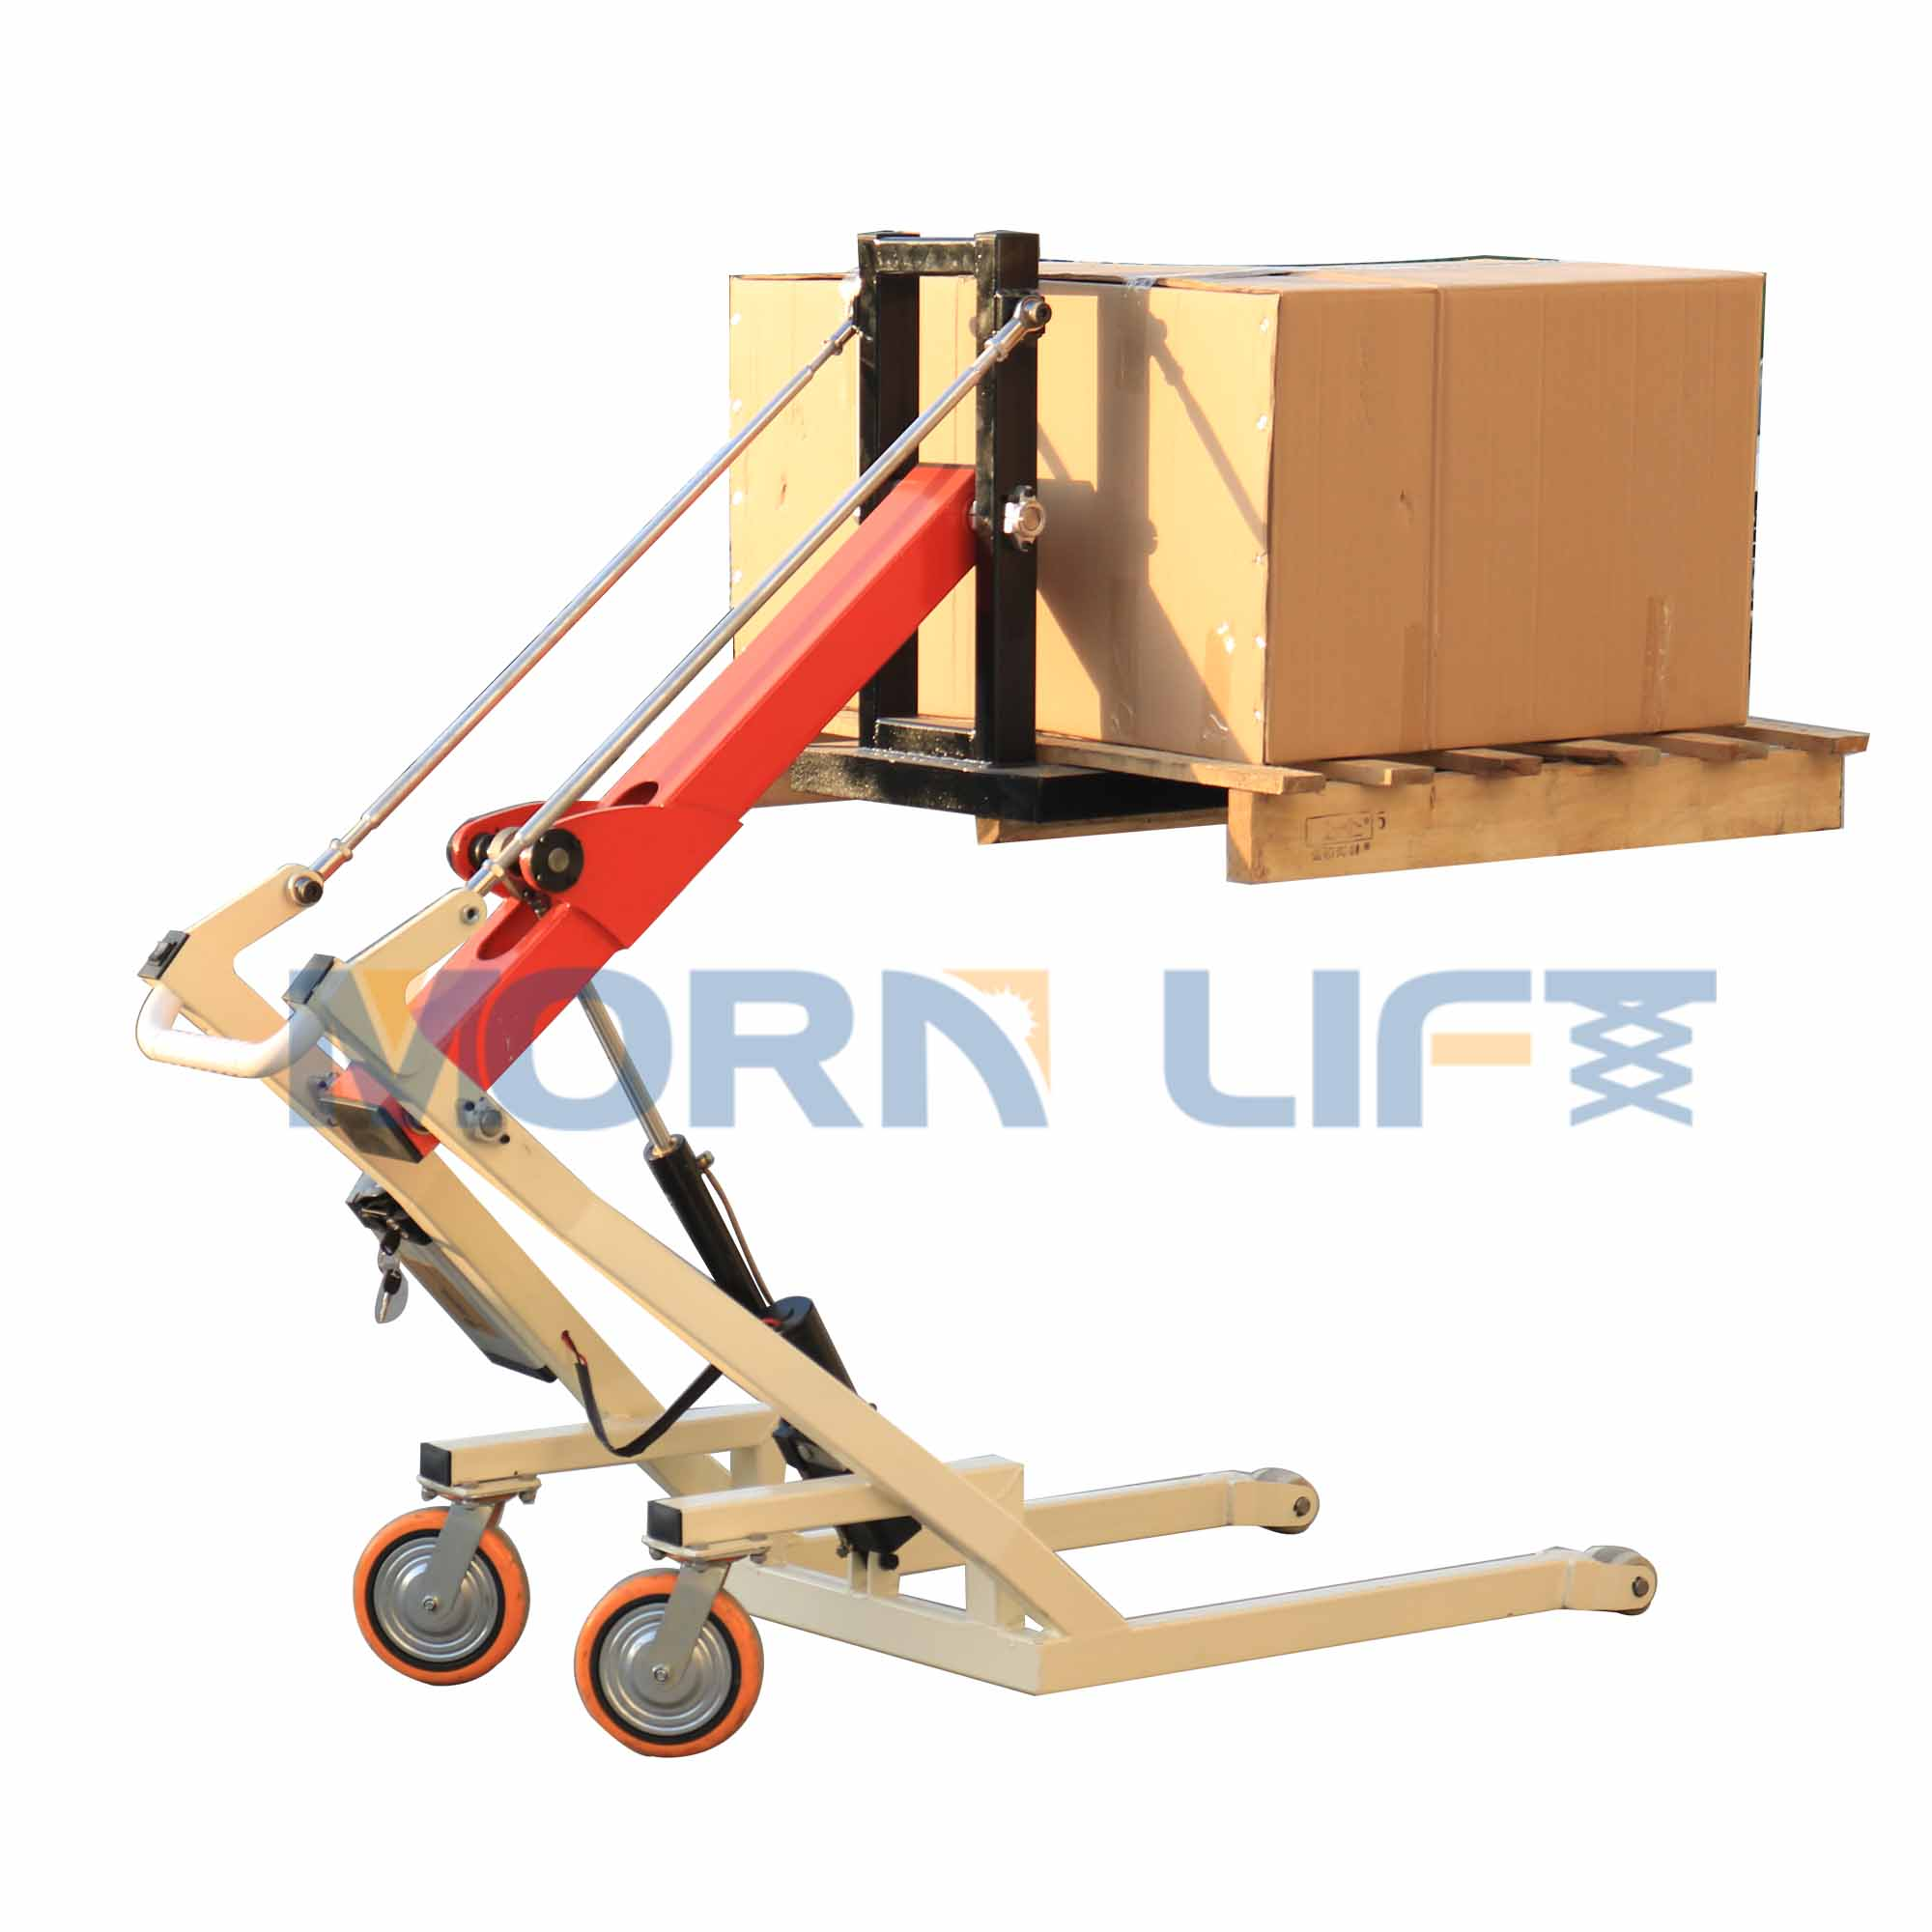 MORN LIFT The PFL30 Portable Forklift Is Mainly Used For Handling In Storage, Logistics And Other Occasions